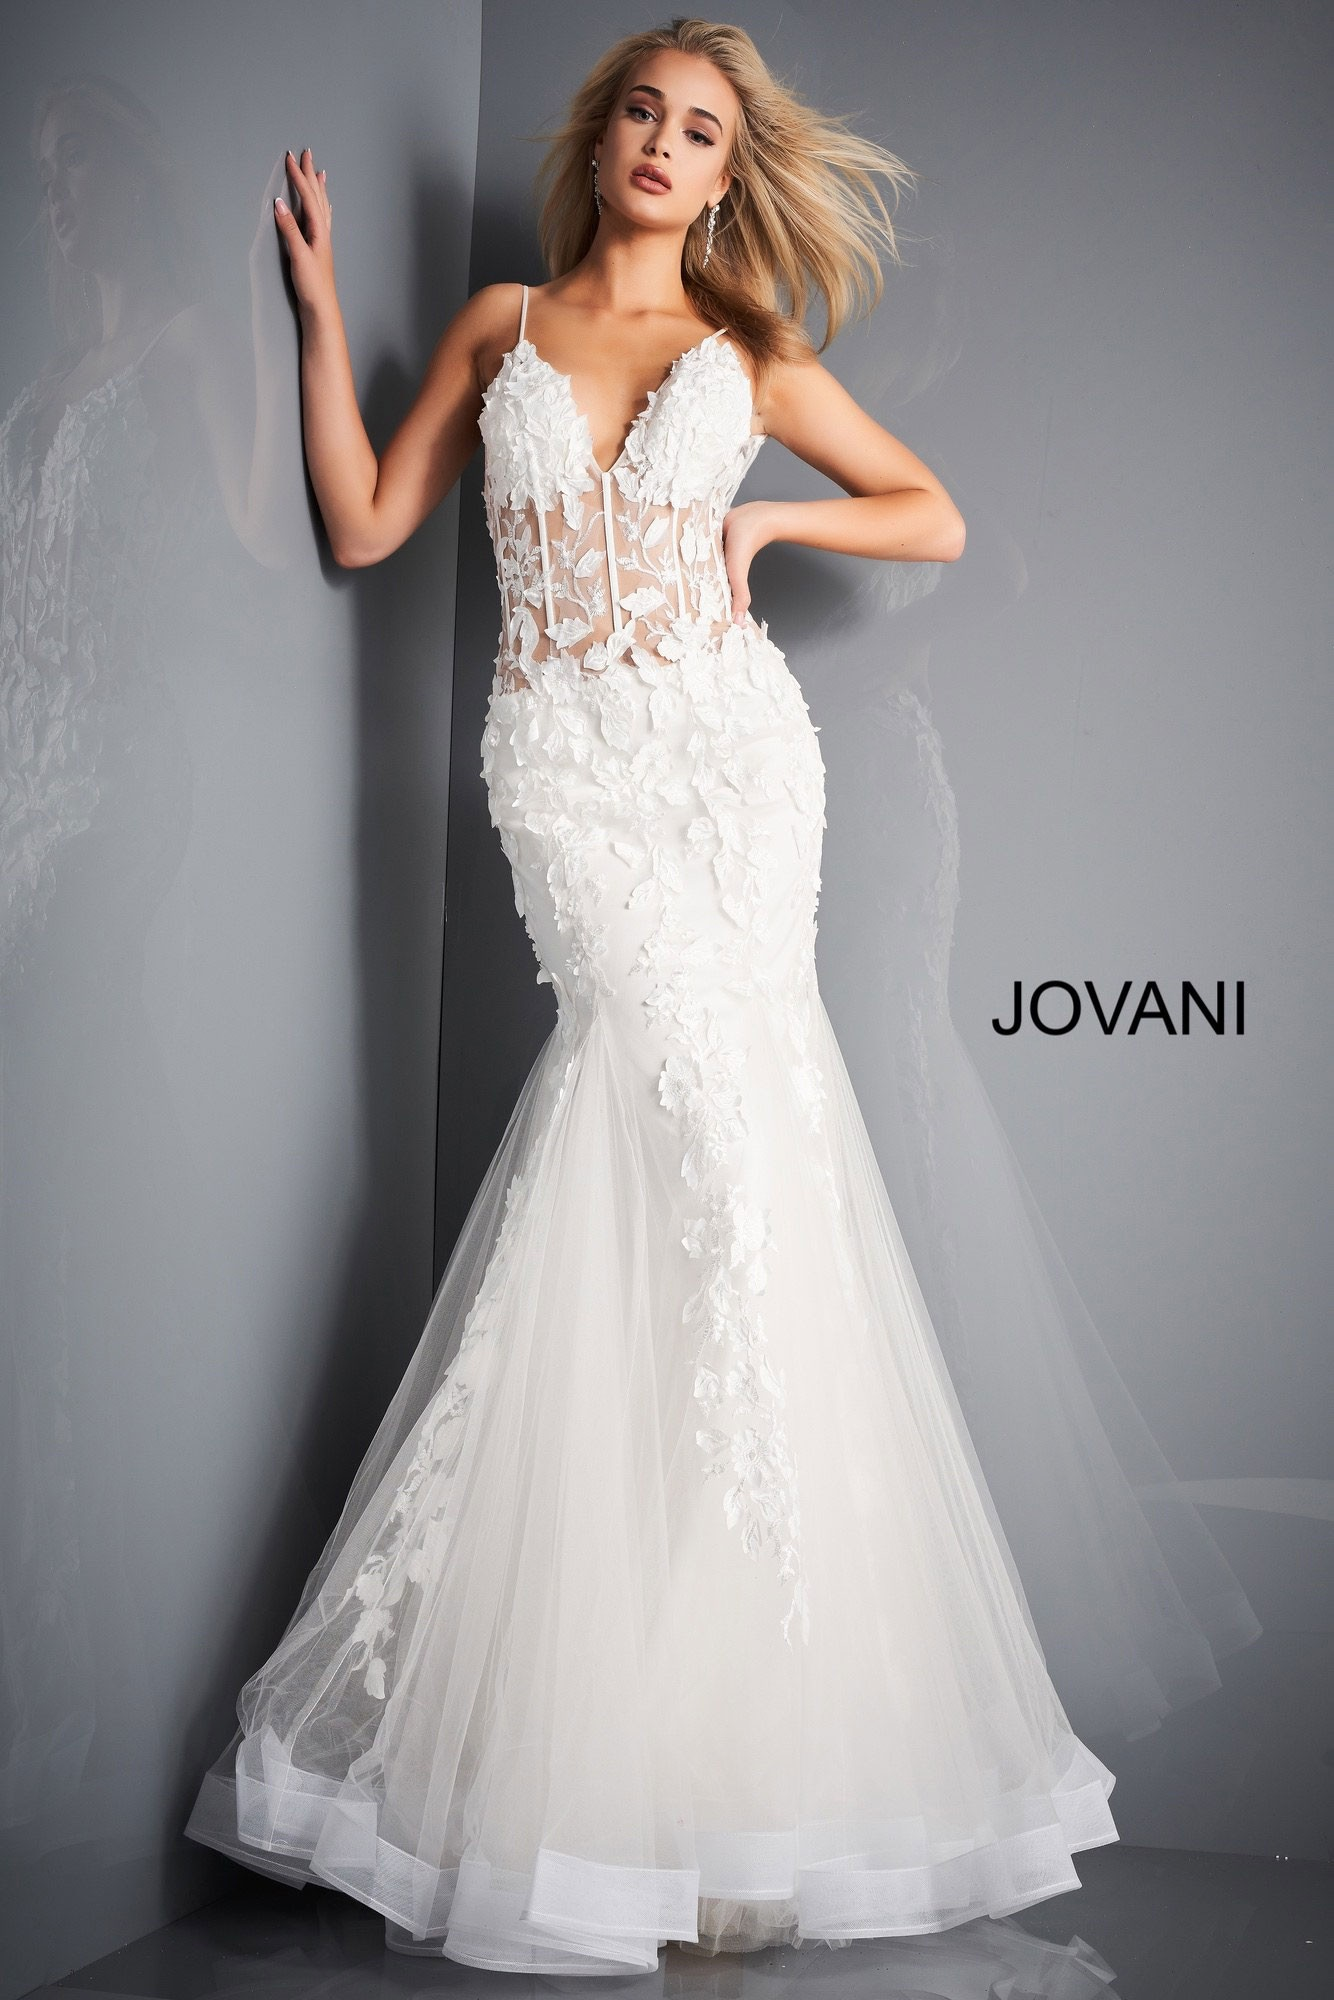 Jovani 02841 Floral Mermaid Informal Wedding Dress